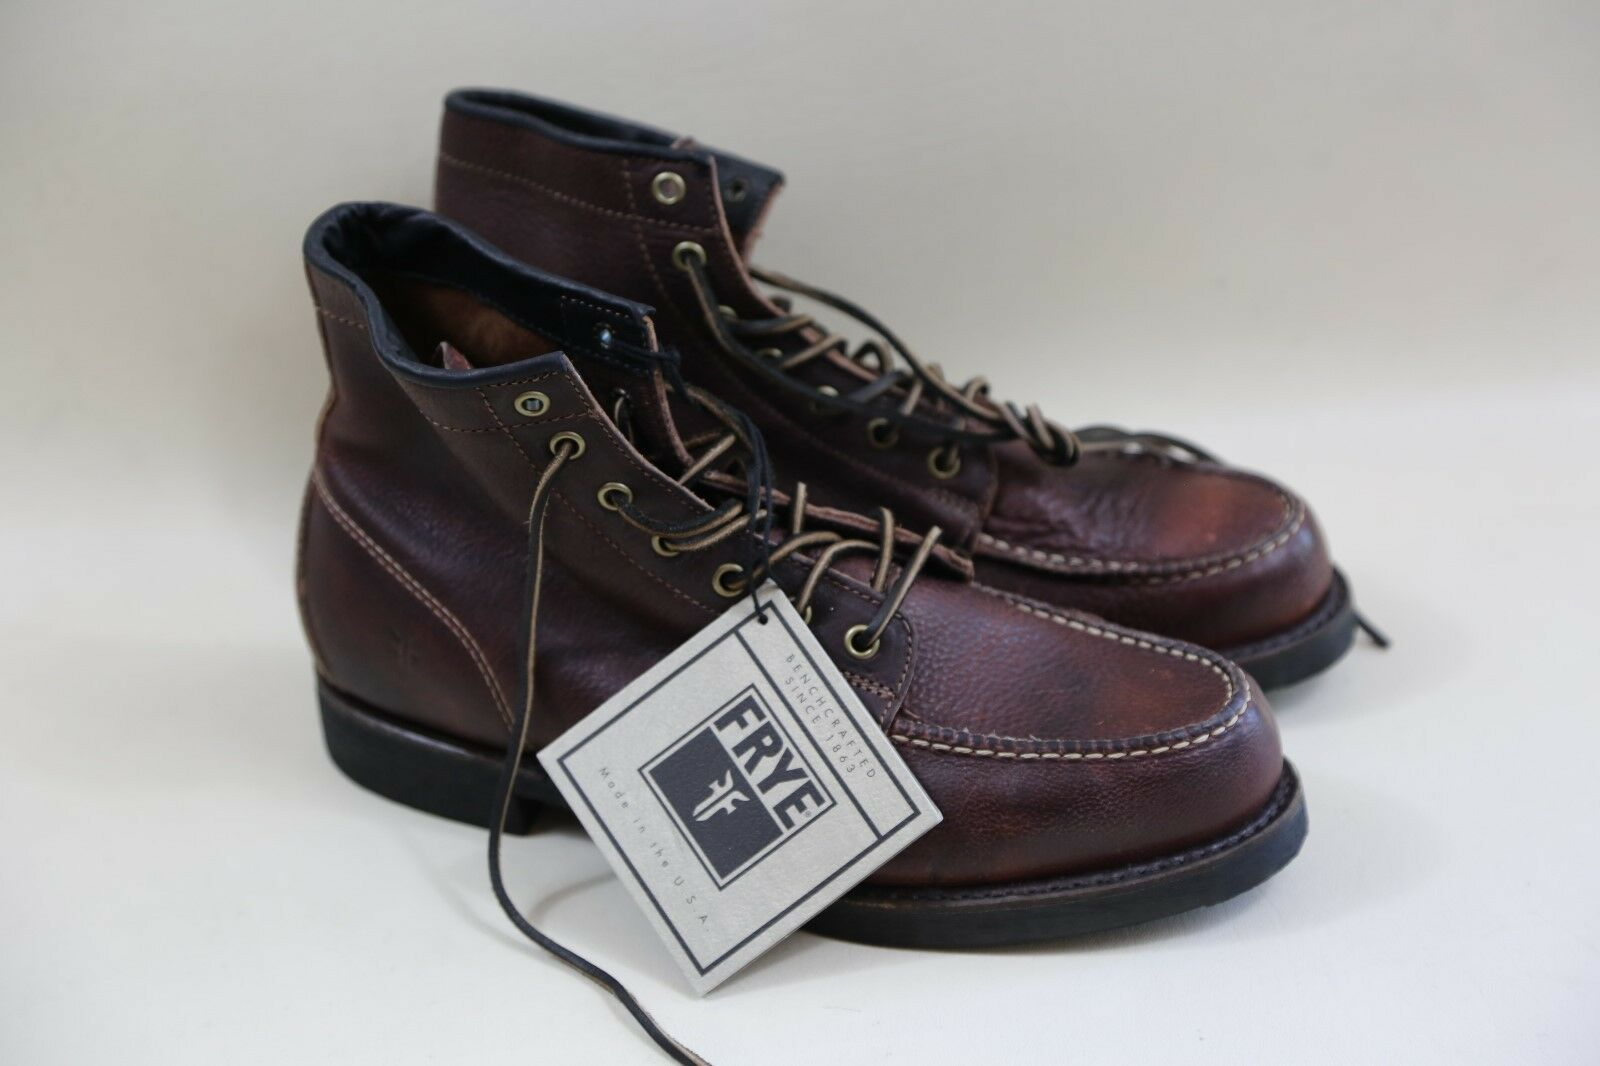 263 FRYE Logger  Lace up stivali Dimensione 8.5   MADE IN USA